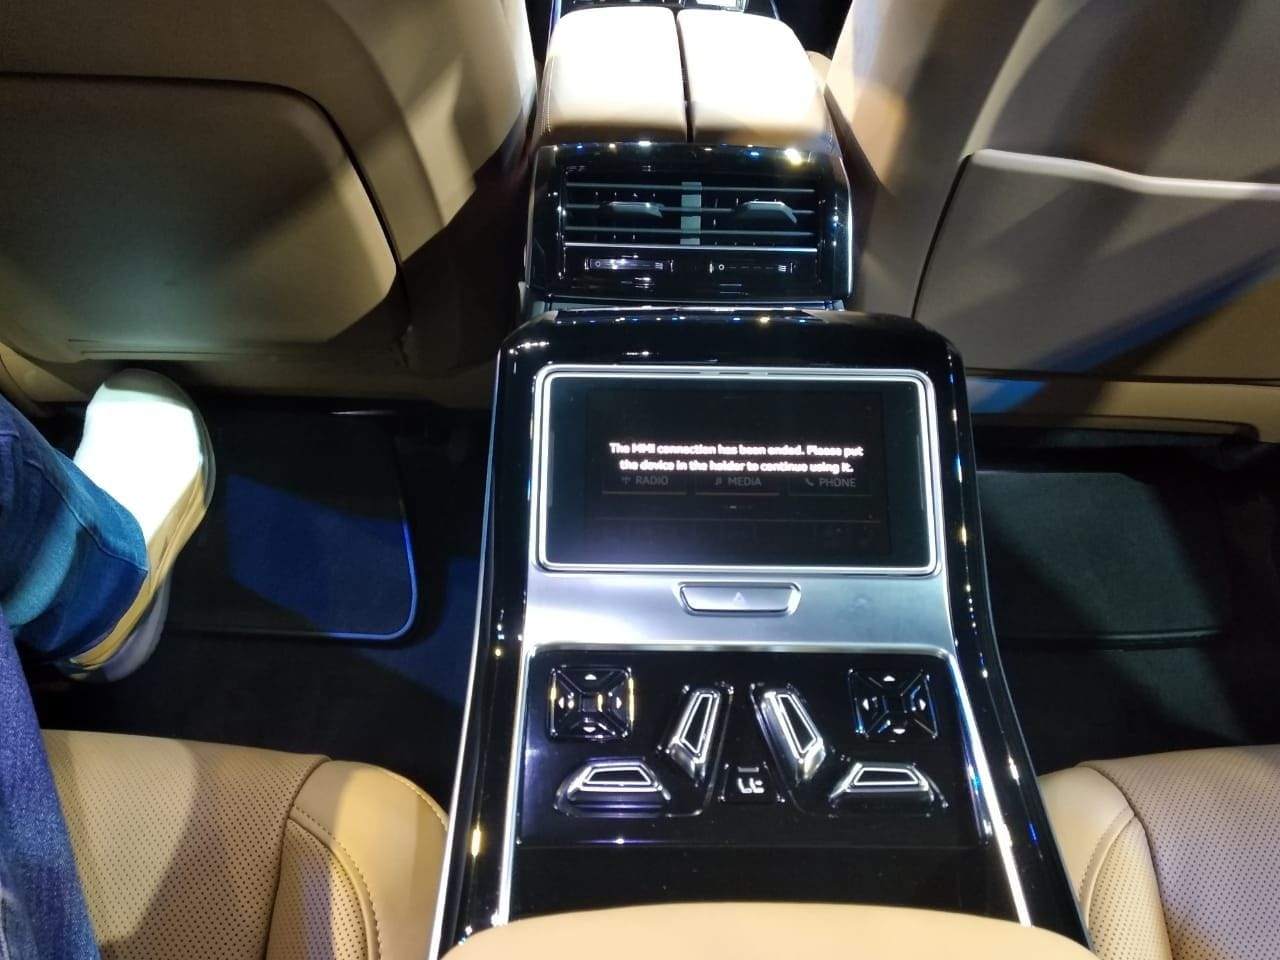 On the inside, the Audi A8 L gets a dual set set up to maximise comfort. The rear passenger on the left even gets a foot massager which accommodates feet of varying sizes.